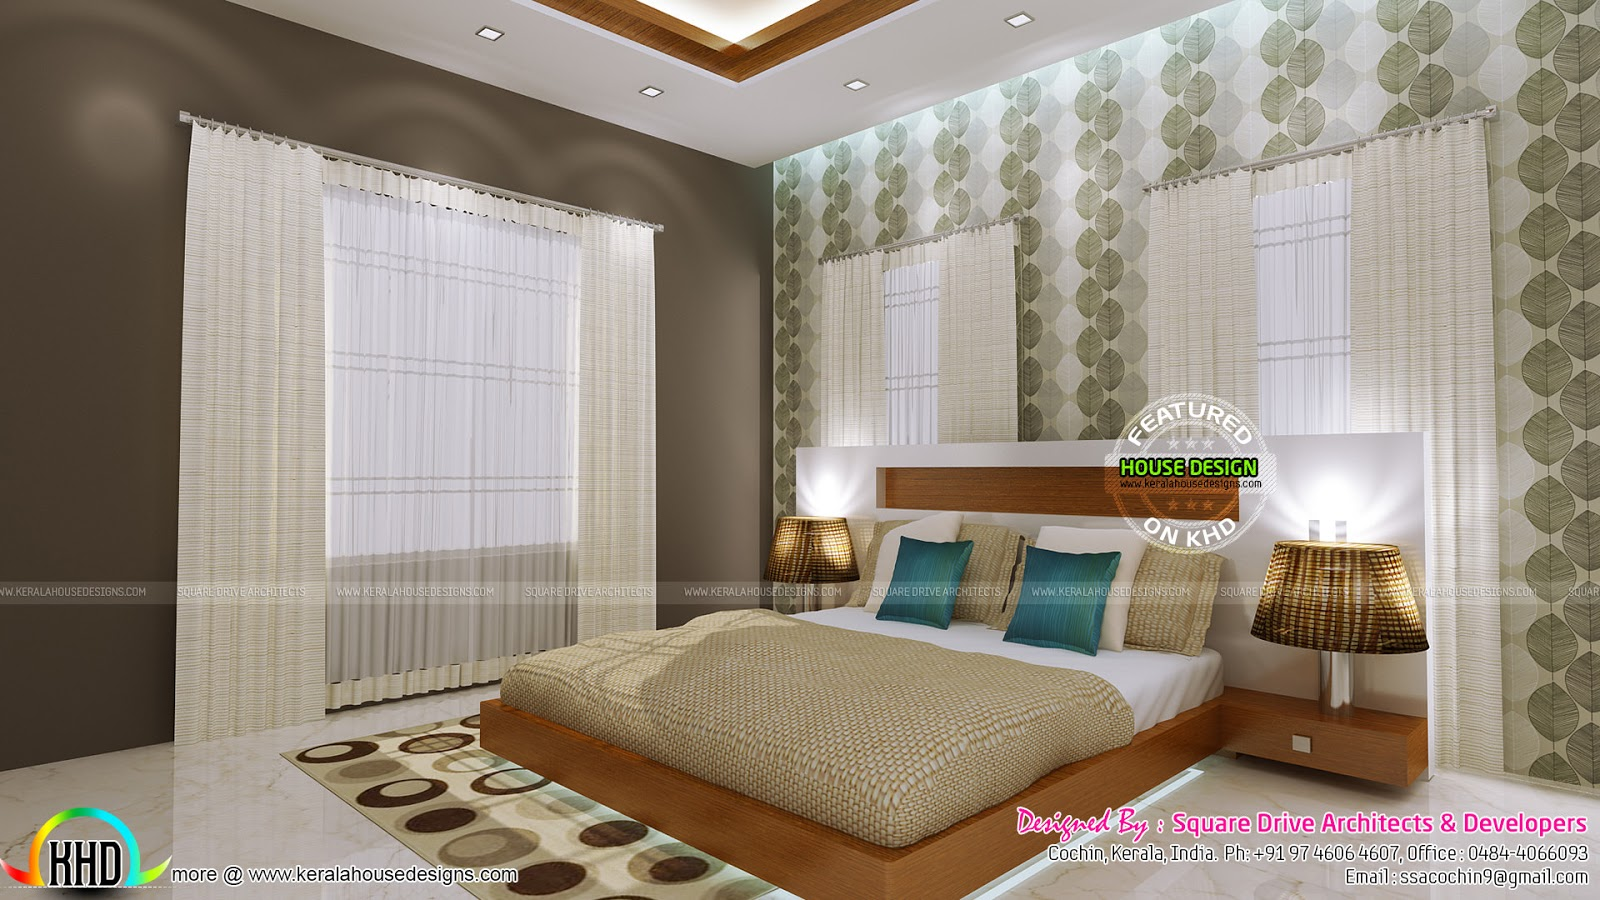 Very beautiful modern interior designs kerala home for Very beautiful house